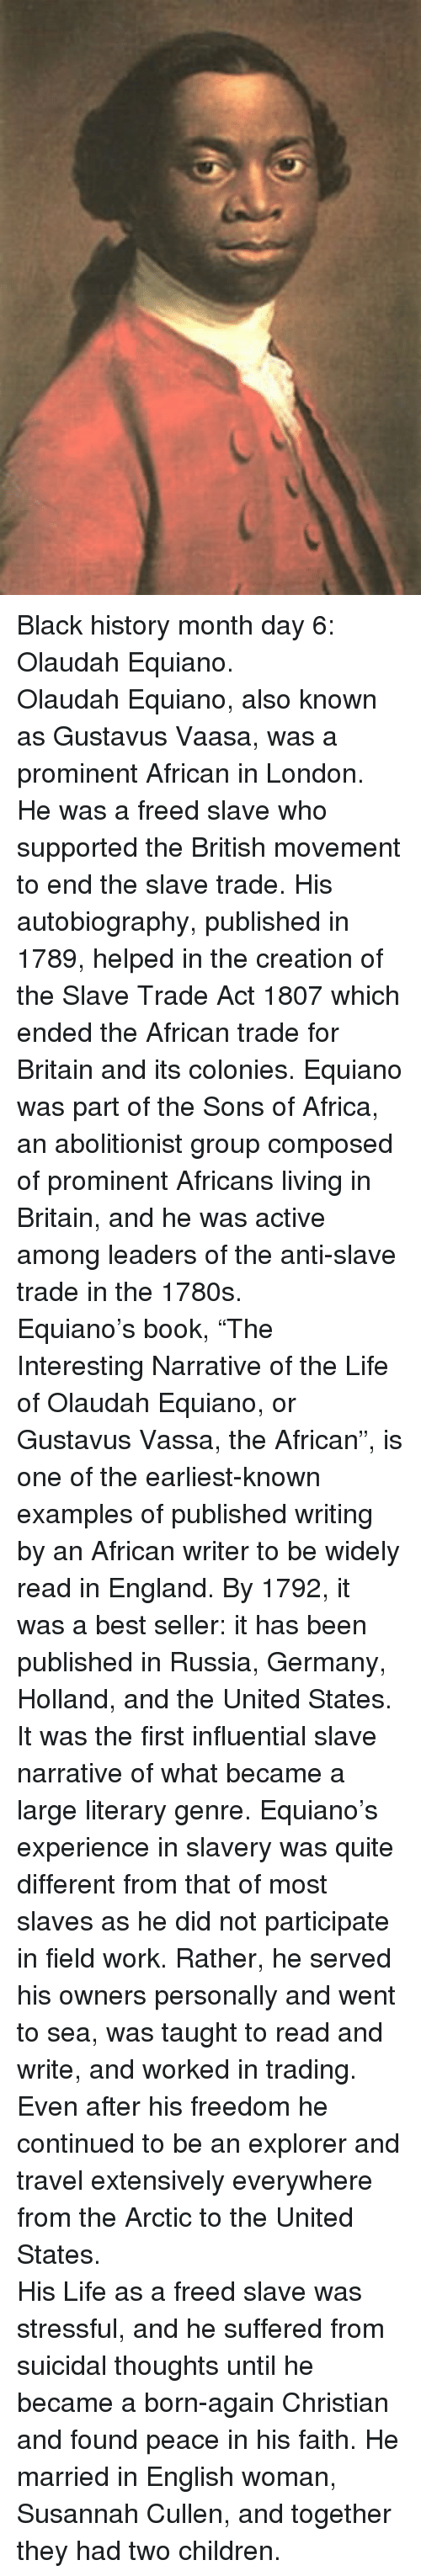 """slavery: <p>Black history month day 6: Olaudah Equiano.<br/></p> <p>Olaudah Equiano, also known as Gustavus Vaasa, was a prominent African in London. He was a freed slave who supported the British movement to end the slave trade. His autobiography, published in 1789, helped in the creation of the Slave Trade Act 1807 which ended the African trade for Britain and its colonies. Equiano was part of the Sons of Africa, an abolitionist group composed of prominent Africans living in Britain, and he was active among leaders of the anti-slave trade in the 1780s.</p>  <p>Equiano's book, """"The Interesting Narrative of the Life of Olaudah Equiano, or Gustavus Vassa, the African"""", is one of the earliest-known examples of published writing by an African writer to be widely read in England. By 1792, it was a best seller: it has been published in Russia, Germany, Holland, and the United States. It was the first influential slave narrative of what became a large literary genre. Equiano's experience in slavery was quite different from that of most slaves as he did not participate in field work. Rather, he served his owners personally and went to sea, was taught to read and write, and worked in trading. Even after his freedom he continued to be an explorer and travel extensively everywhere from the Arctic to the United States.</p>  <p>His Life as a freed slave was stressful, and he suffered from suicidal thoughts until he became a born-again Christian and found peace in his faith. He married in English woman, Susannah Cullen, and together they had two children.</p>"""